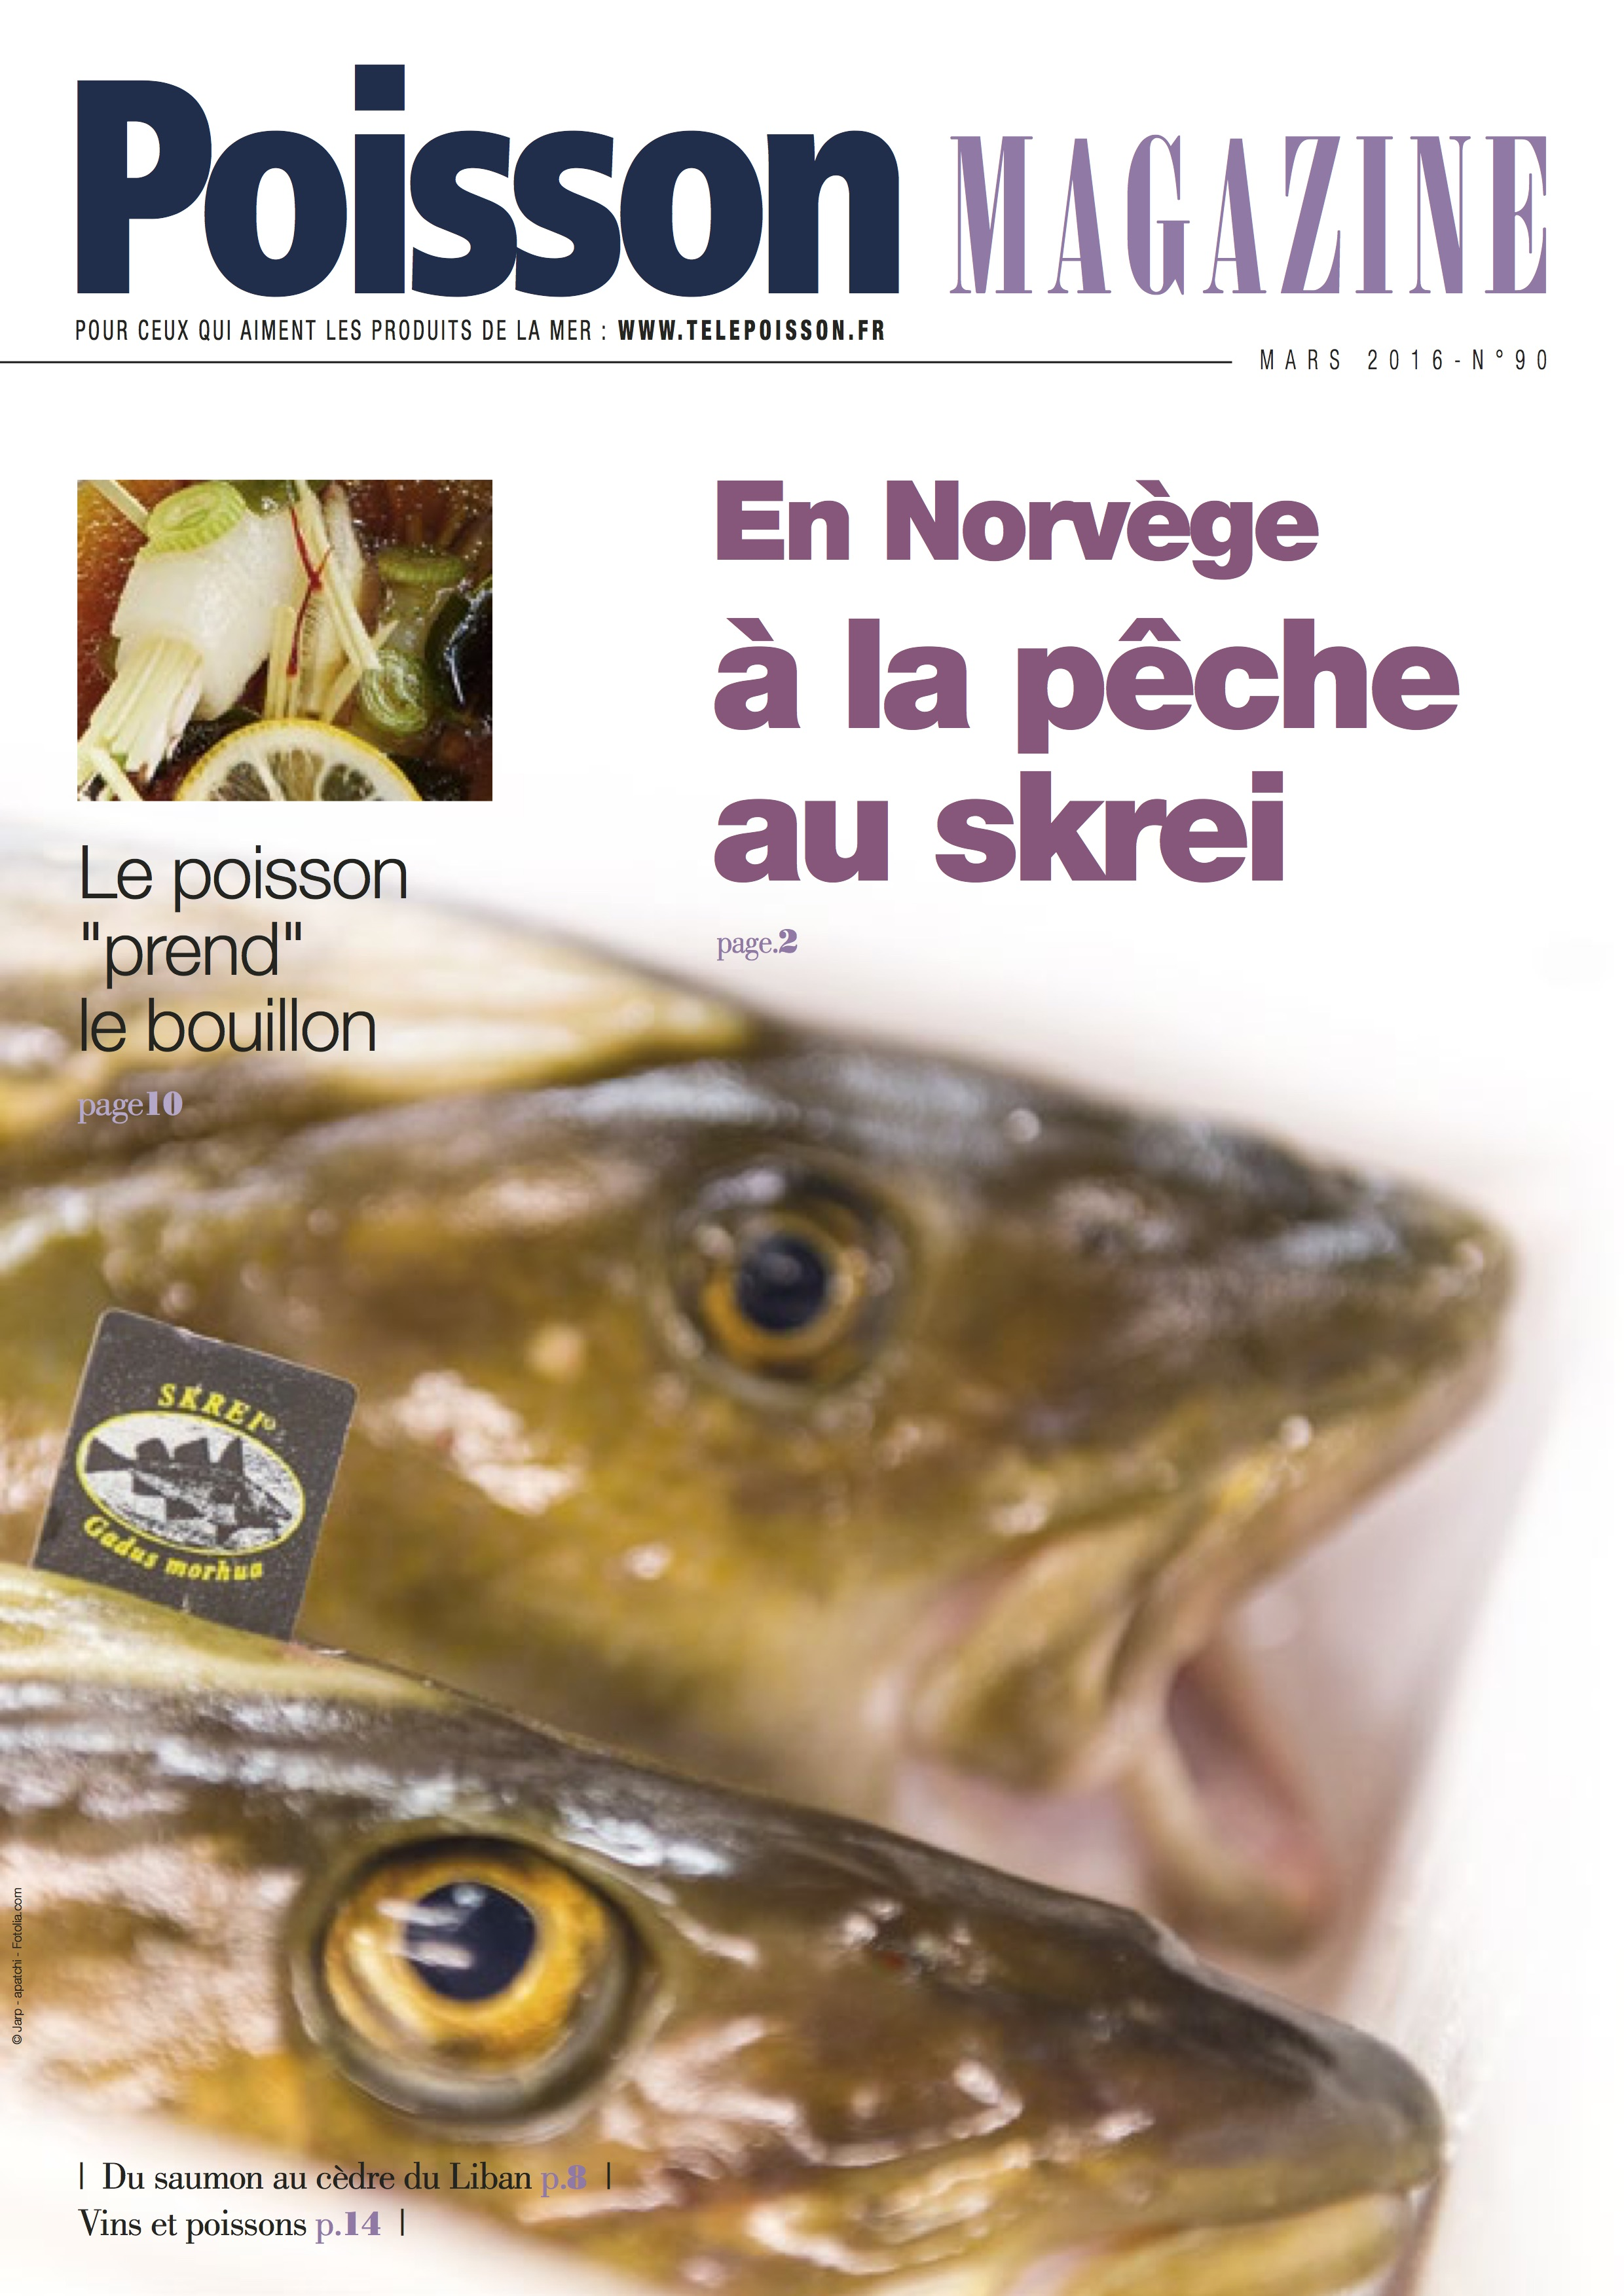 Poisson Magazine